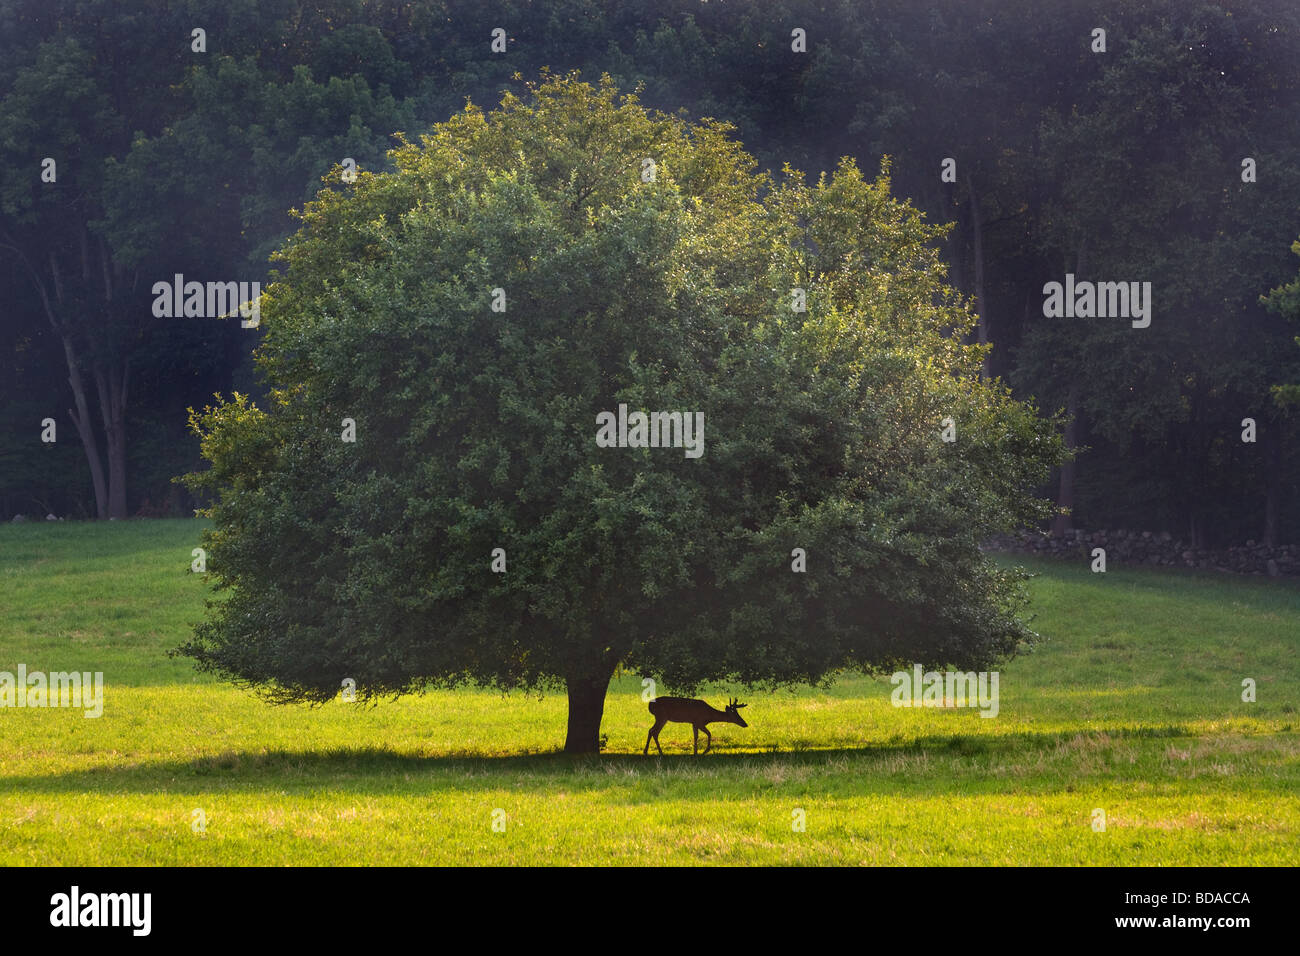 Un jeune cerf sous un arbre en Orange California USA Photo Stock